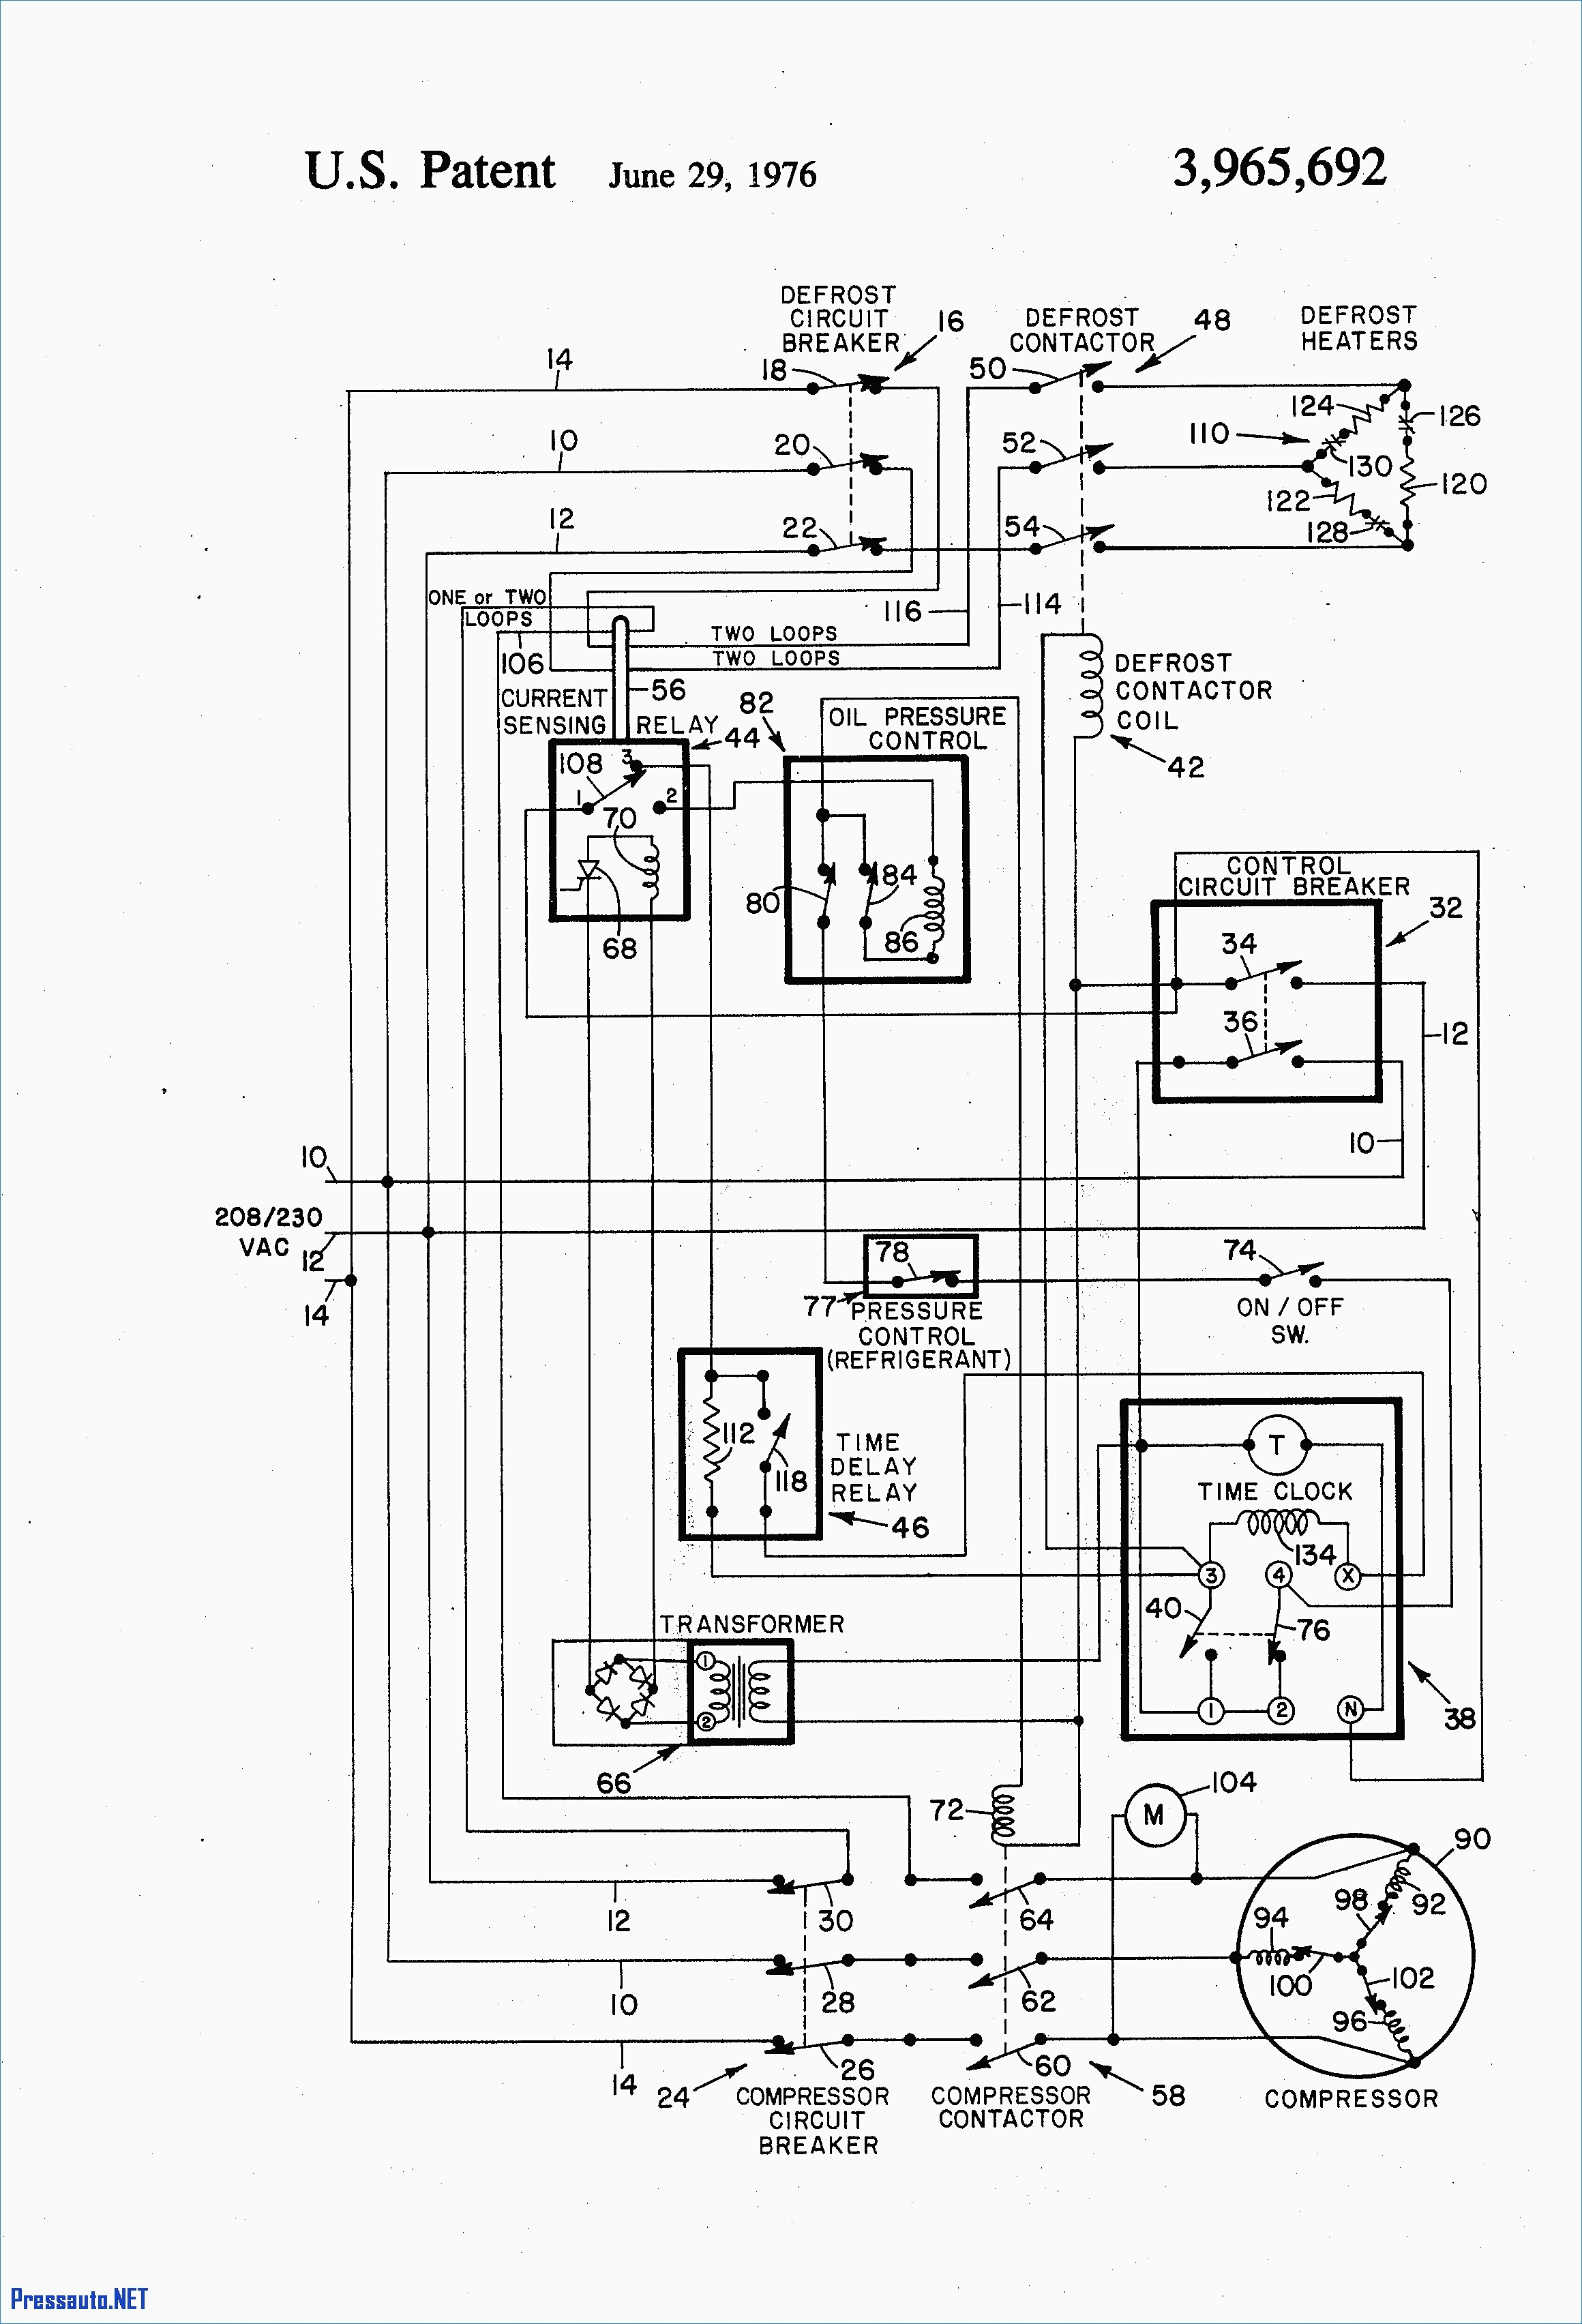 Vfd Wiring Diagram Parallel Libraries To Alternator Furthermore Plc Ladder Logic Diagrams Schematicvfd Schematic Data